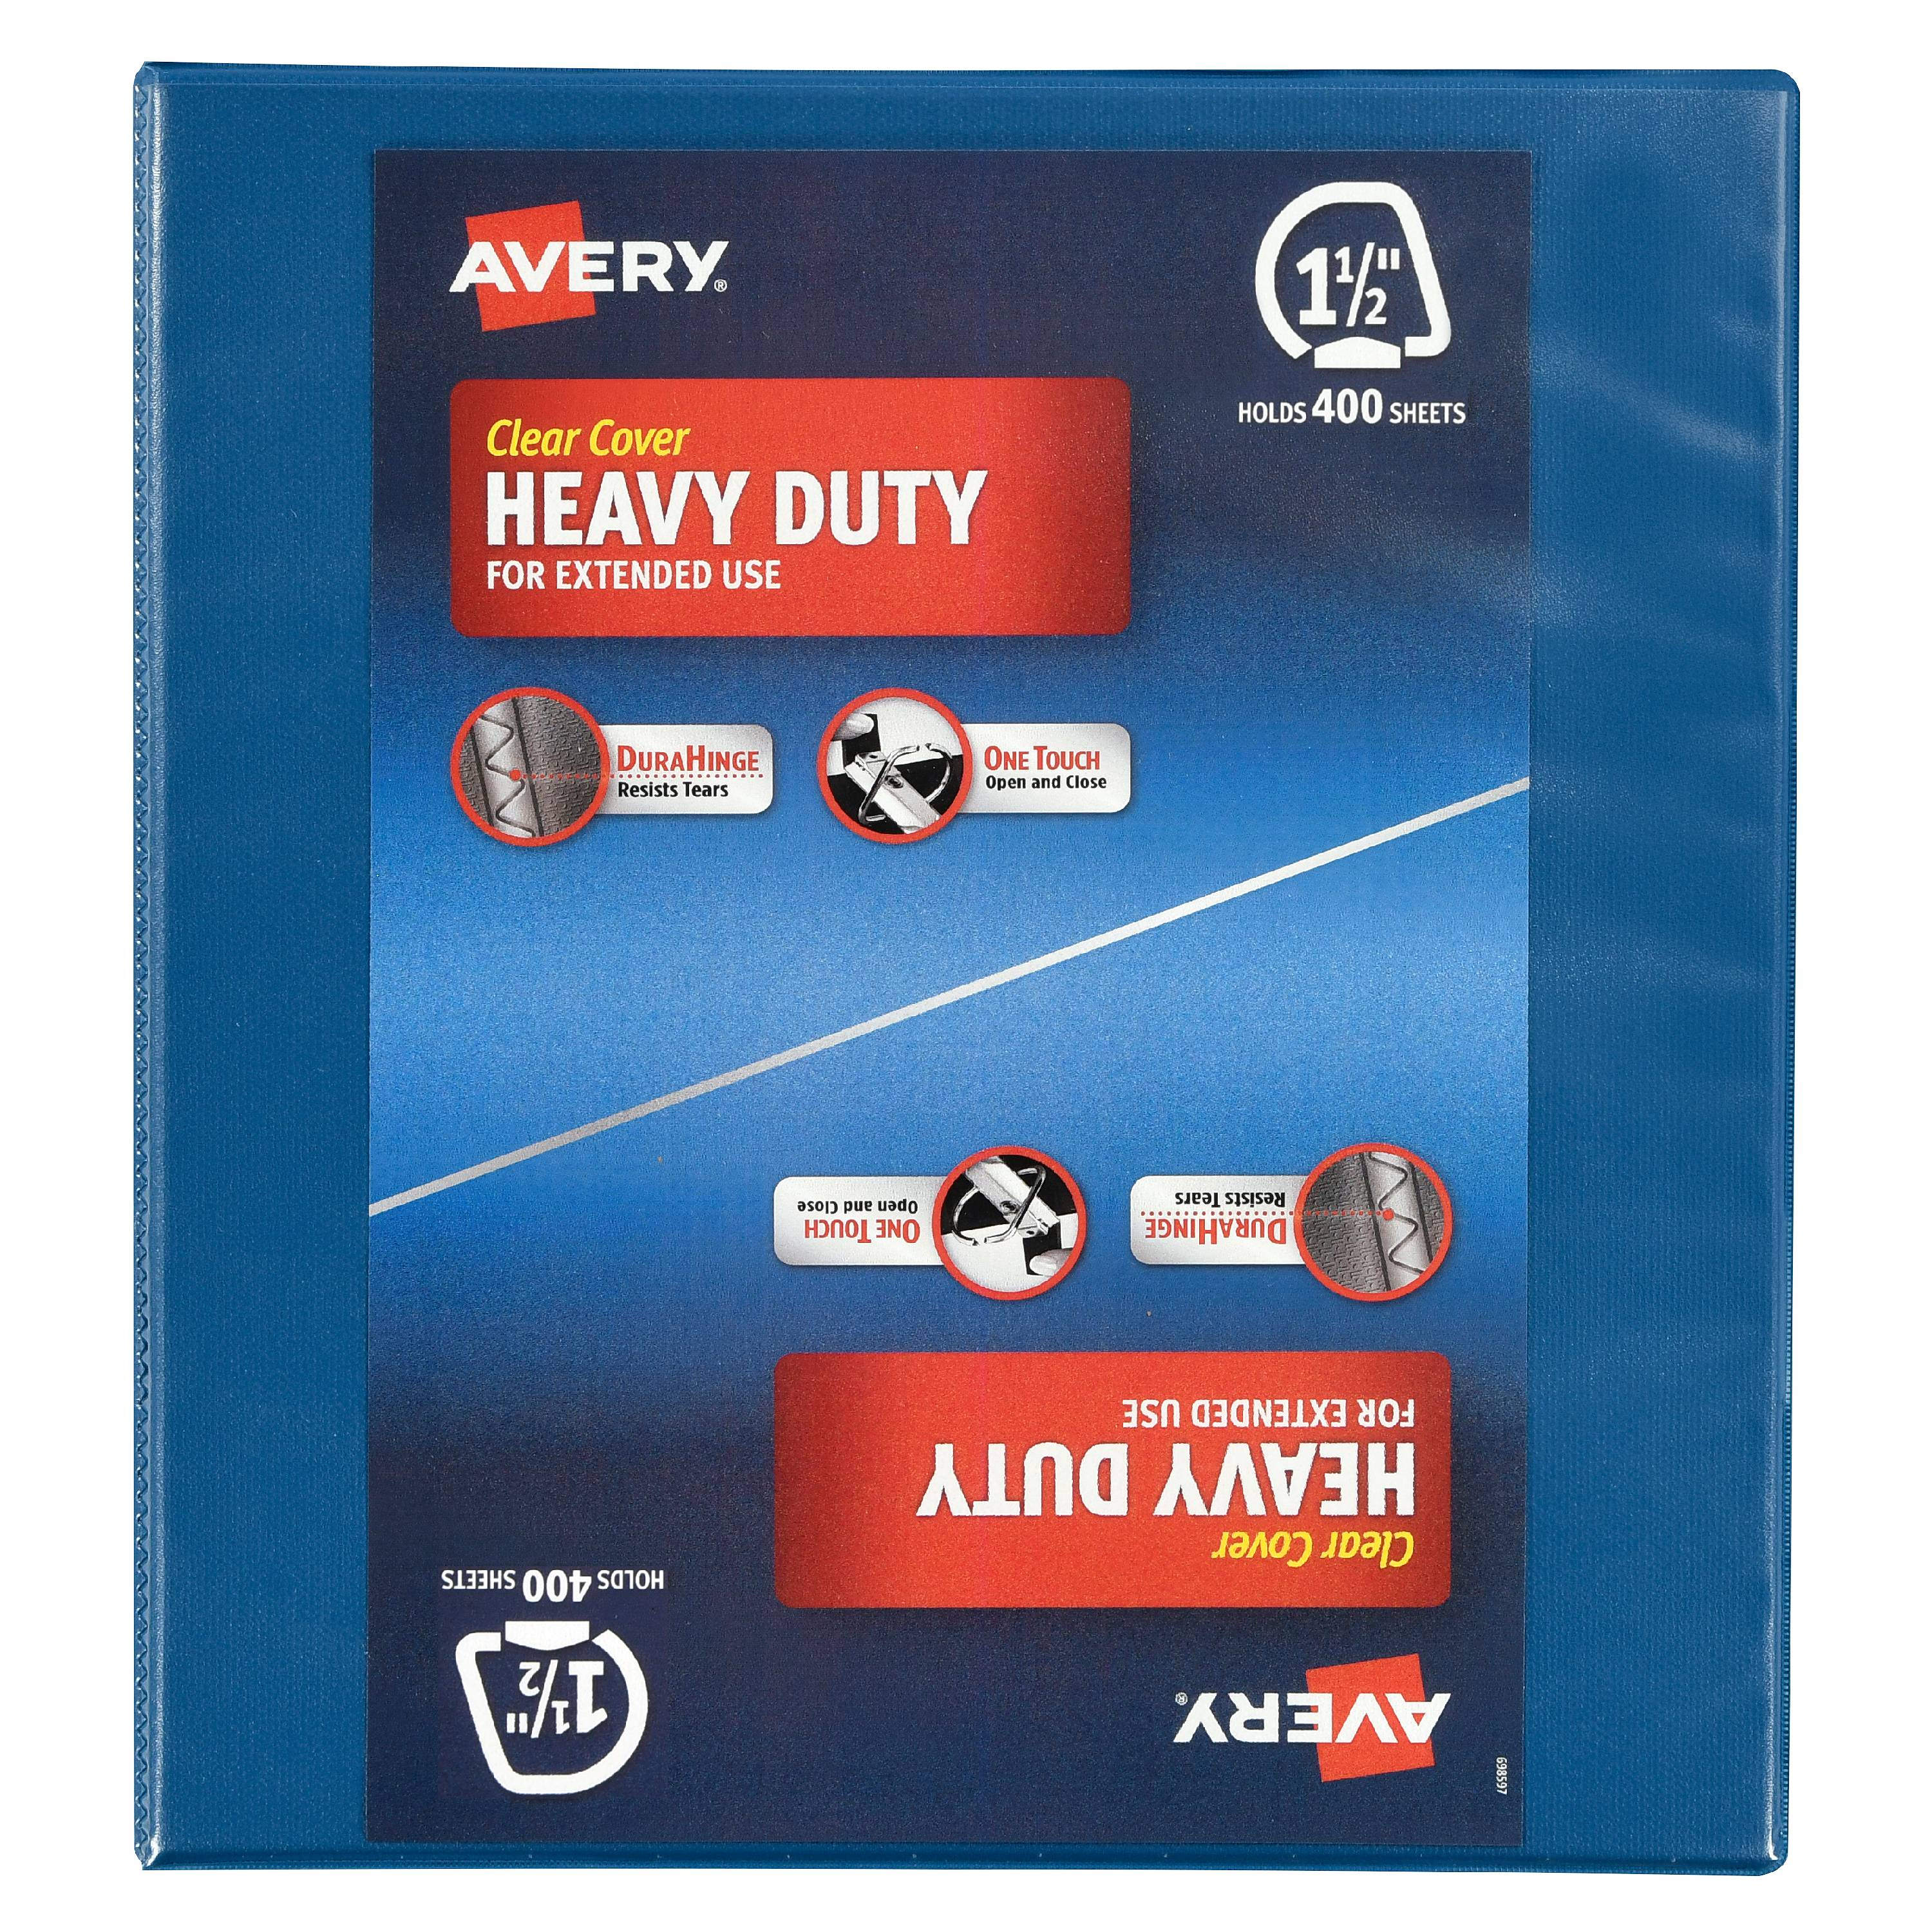 "Avery Heavy Duty View 1.5"" Binder With Avery Ready Index"